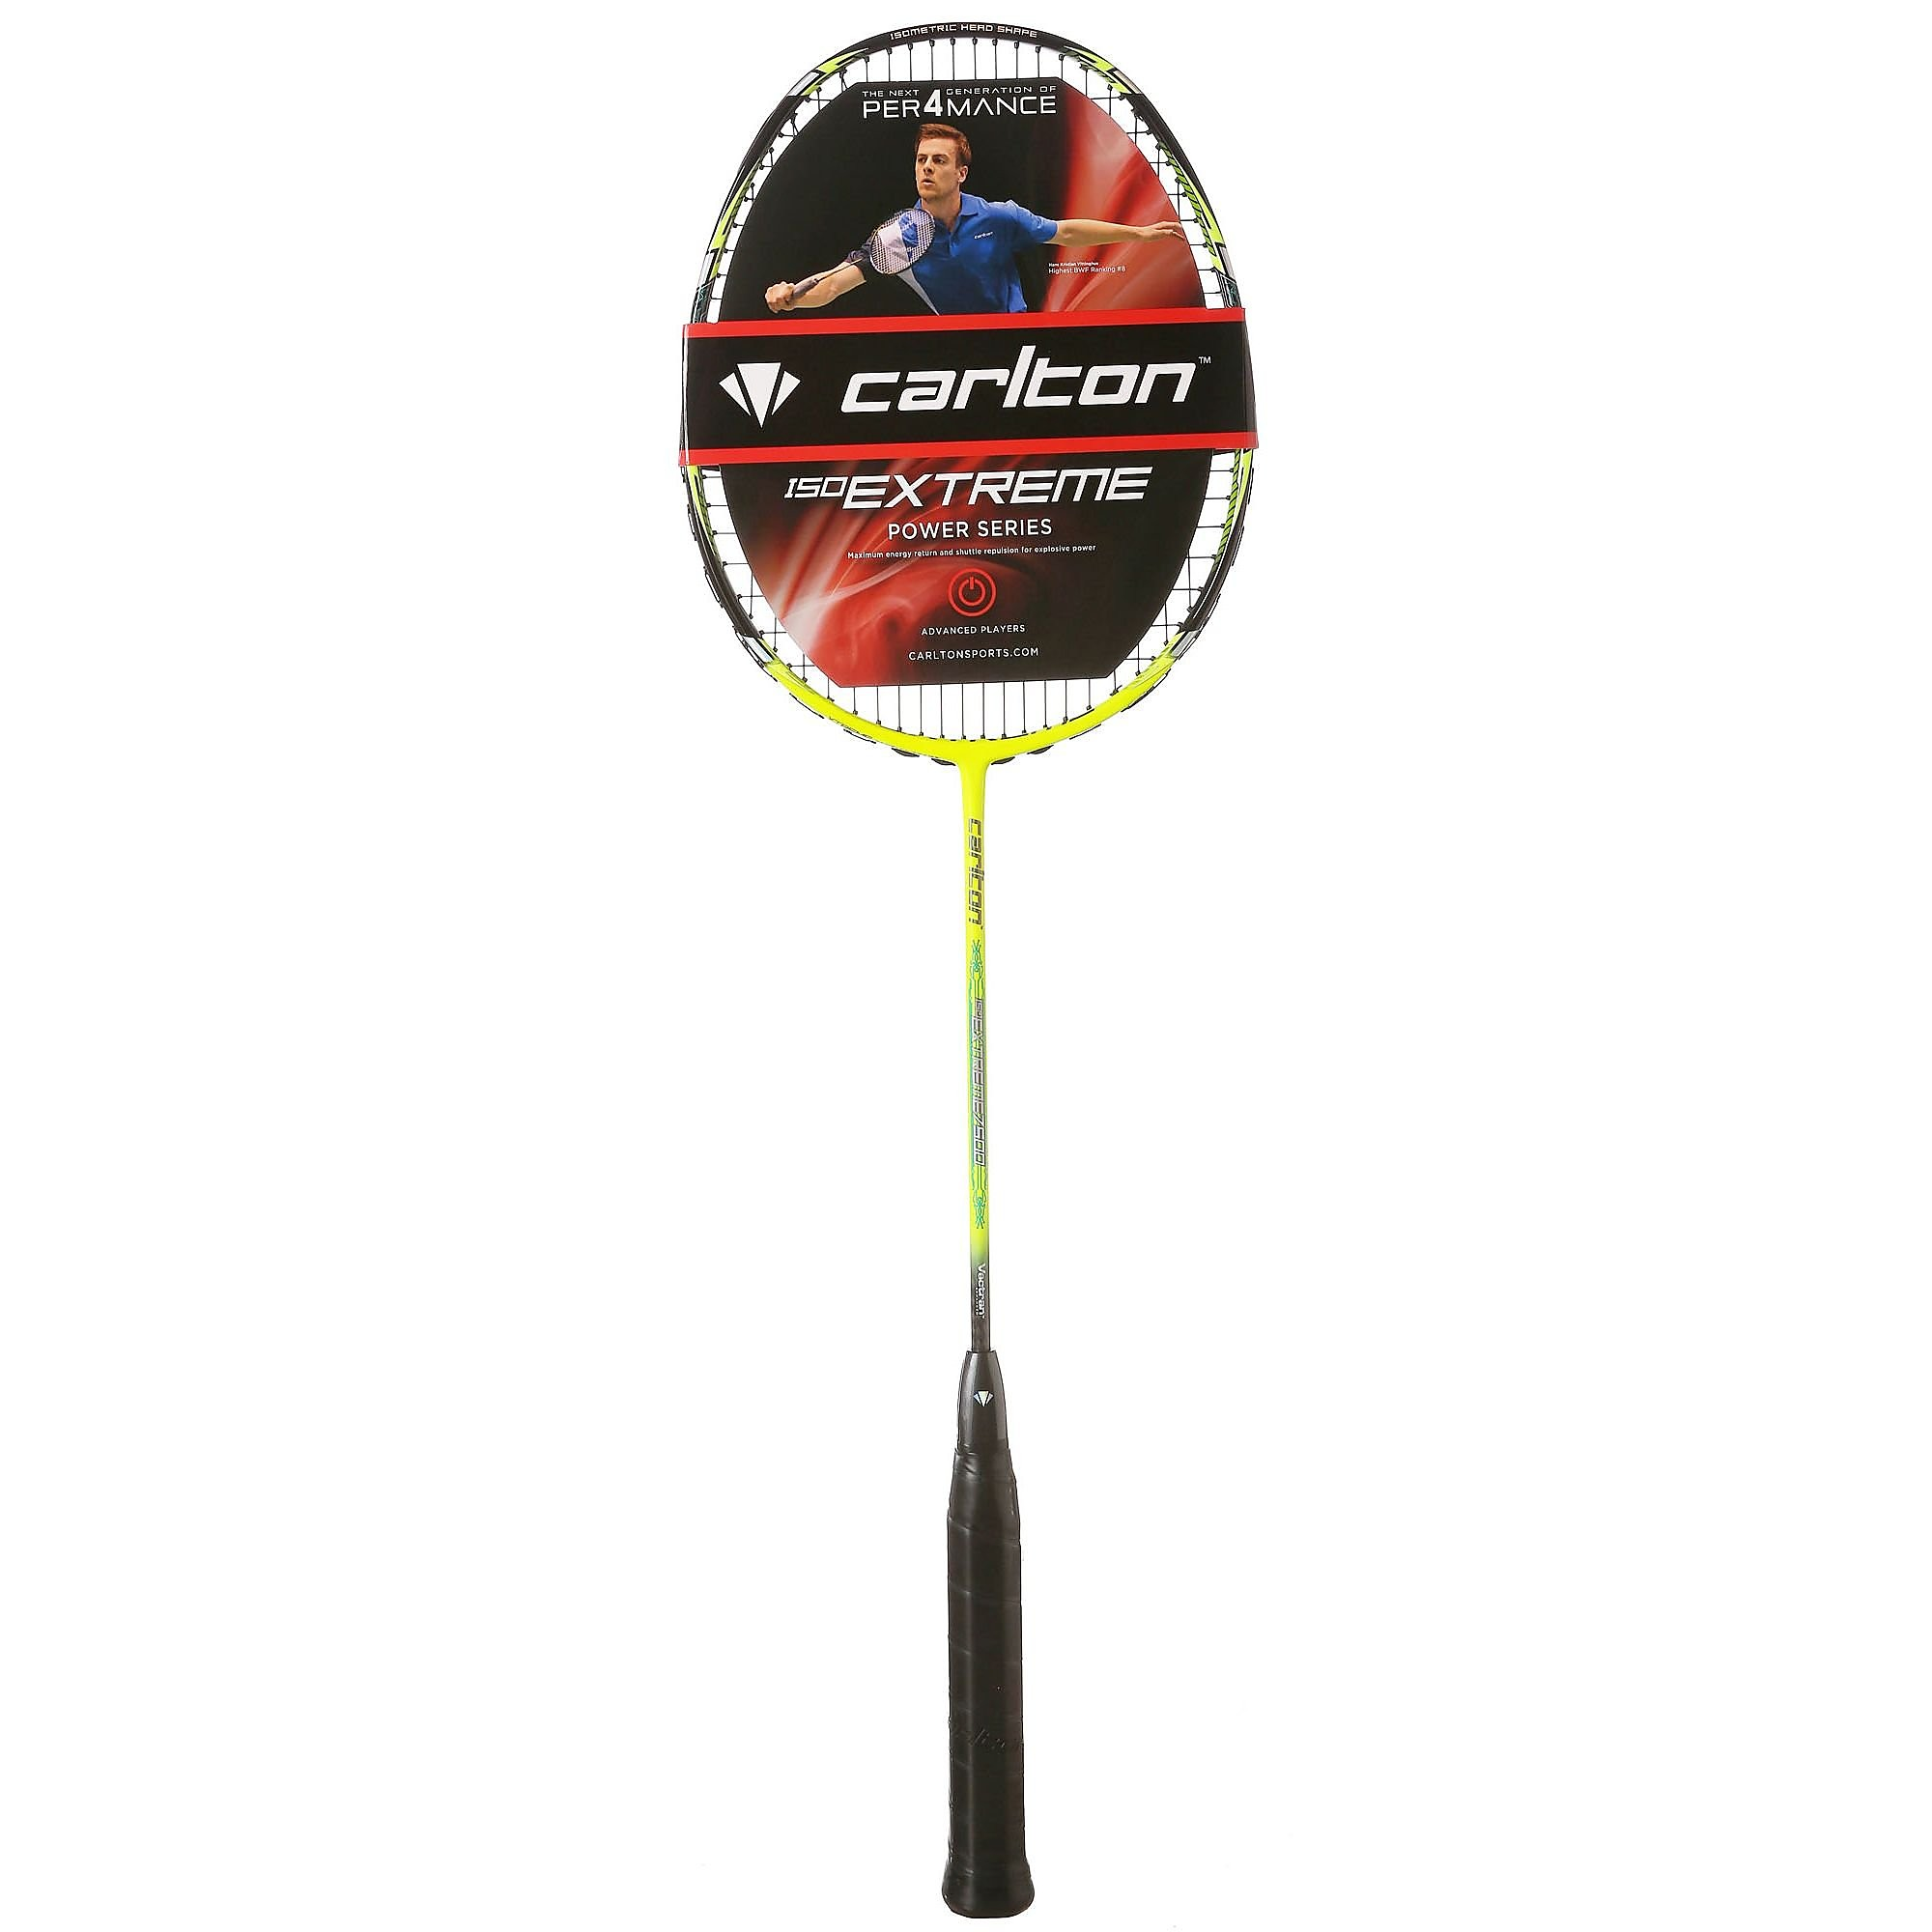 CARLTON ISO EXTREME 7500 GEEL